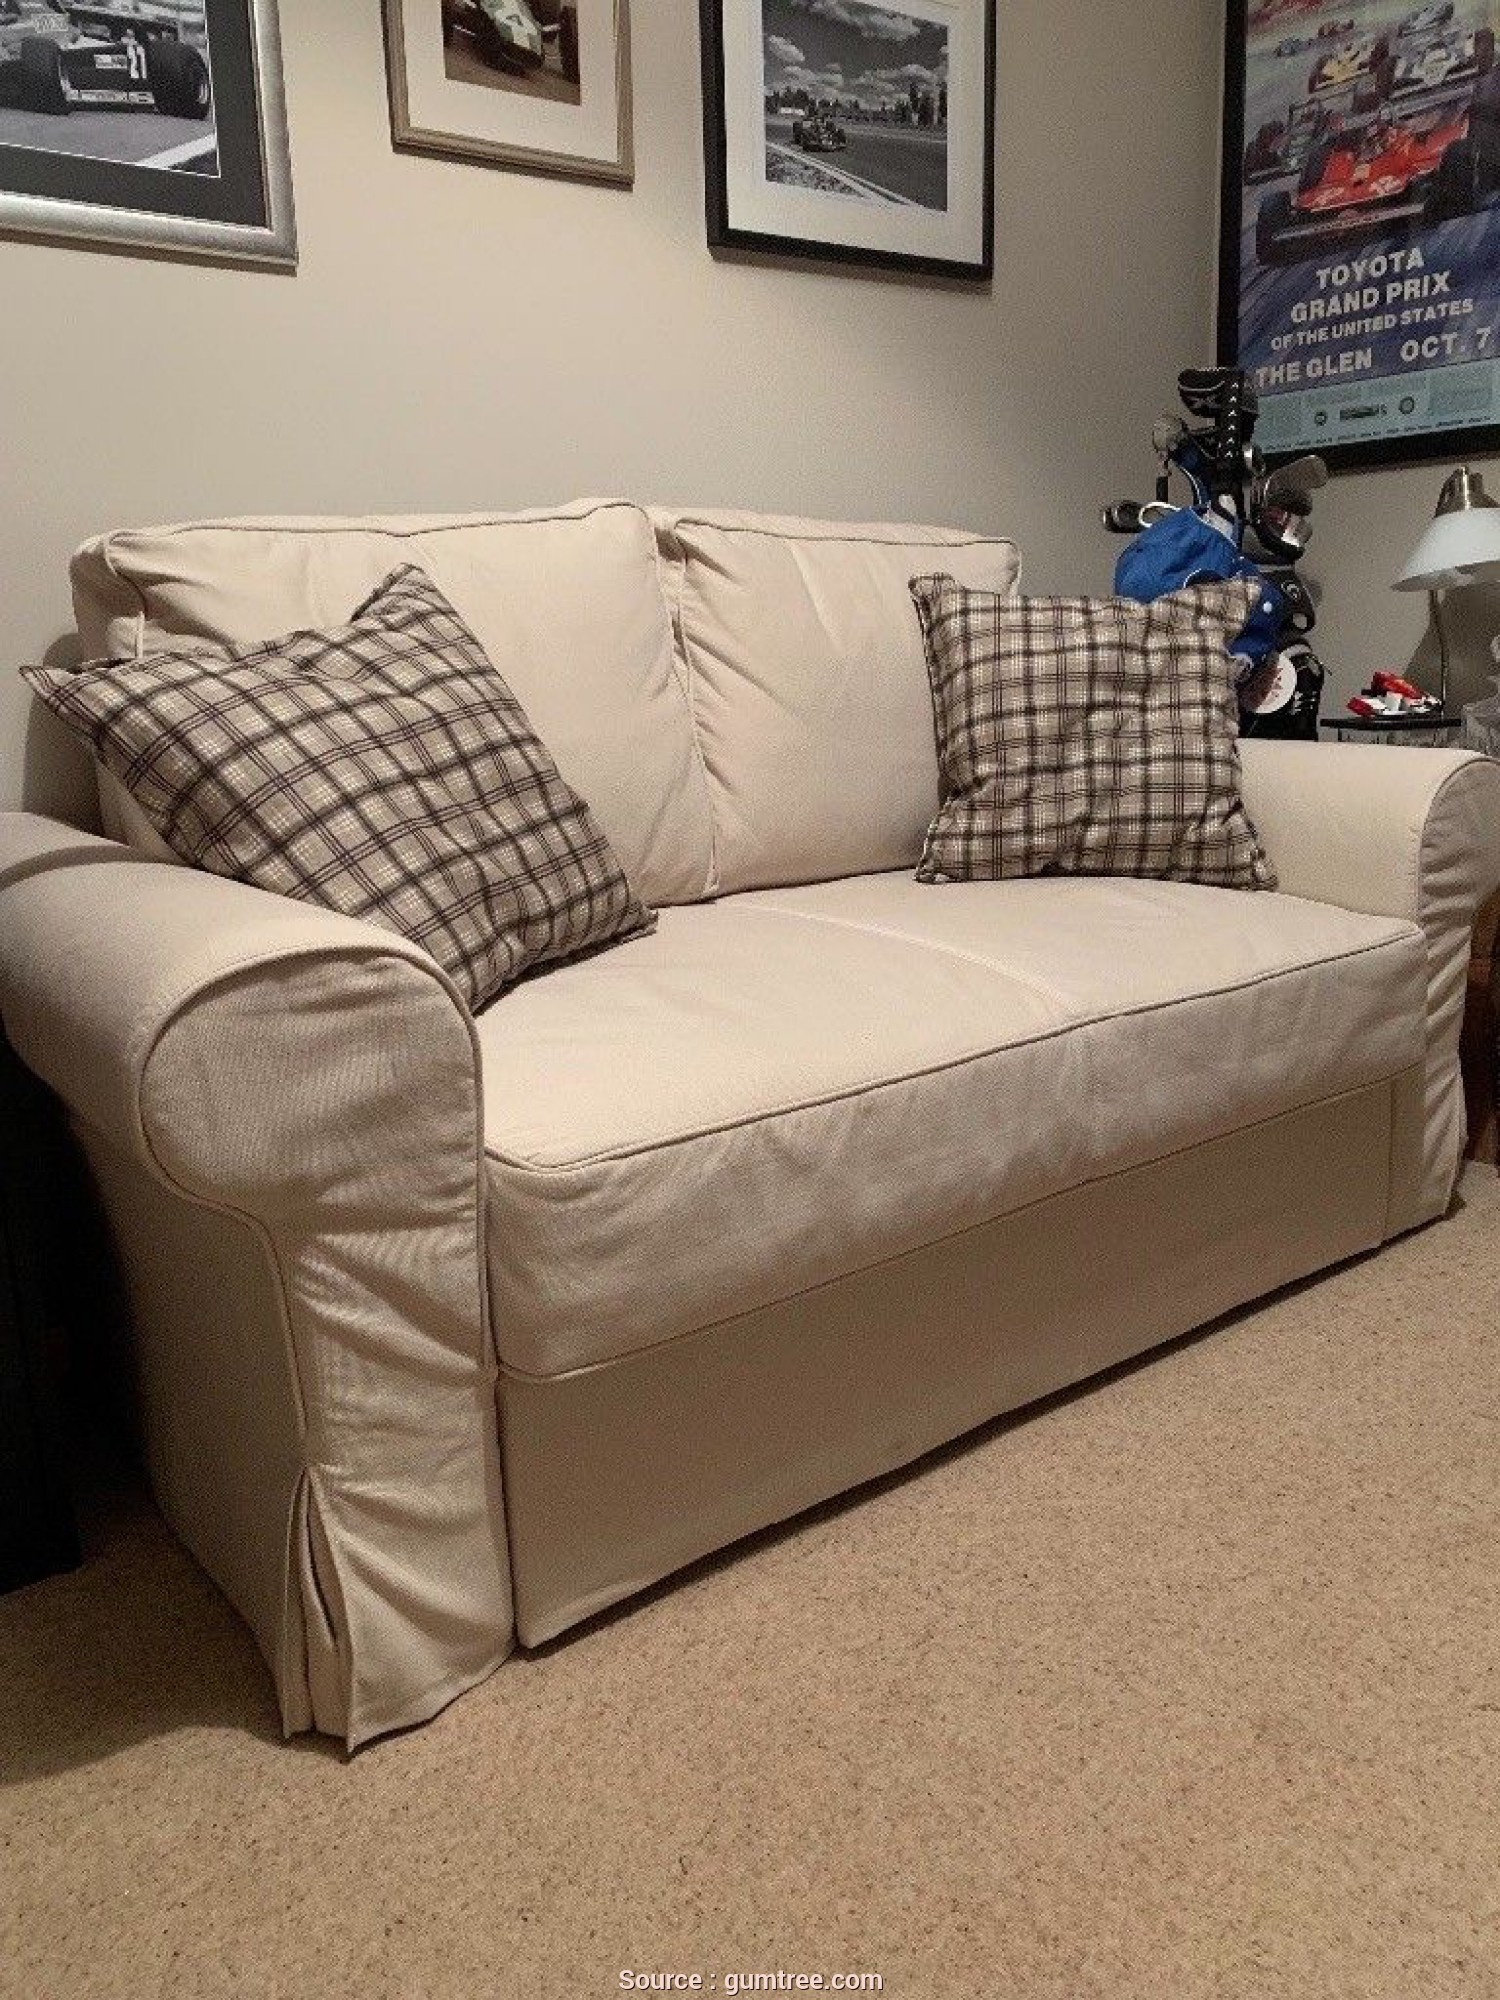 Ikea Backabro Kokemuksia, Favoloso Ikea Backabro 2 Seater Sofa Bed. Used Once, Spotless Condition From A Smoke And